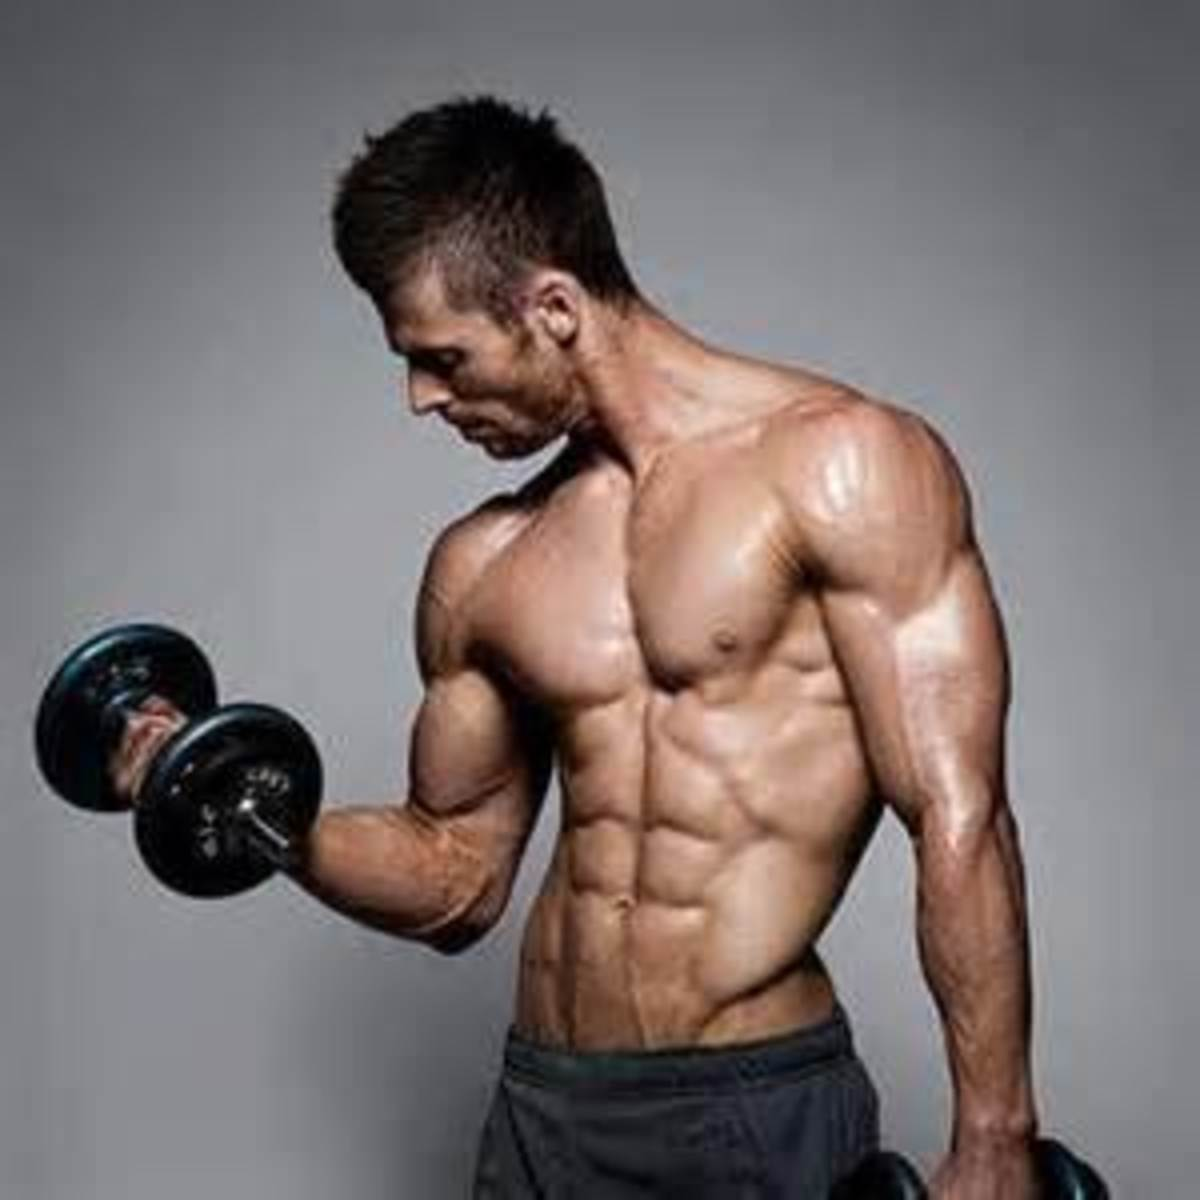 Tips on Naturally Building Lean Muscle